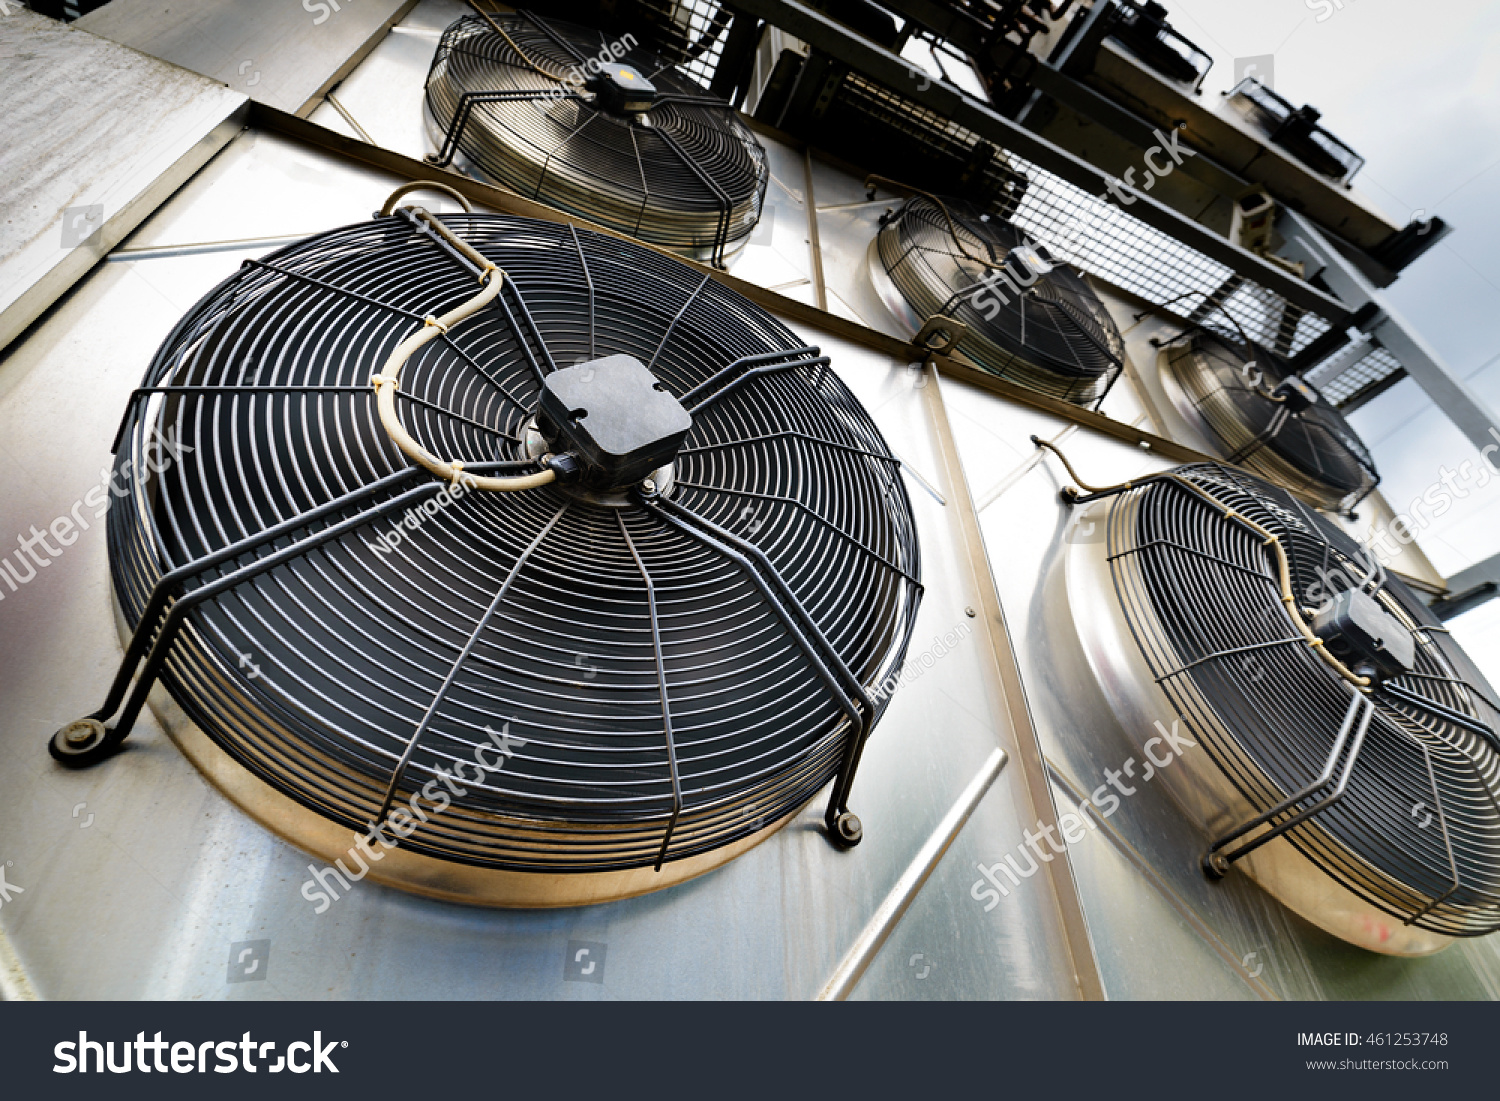 Industrial Cooling Fans : Cooling industrial air conditioning units closeup stock